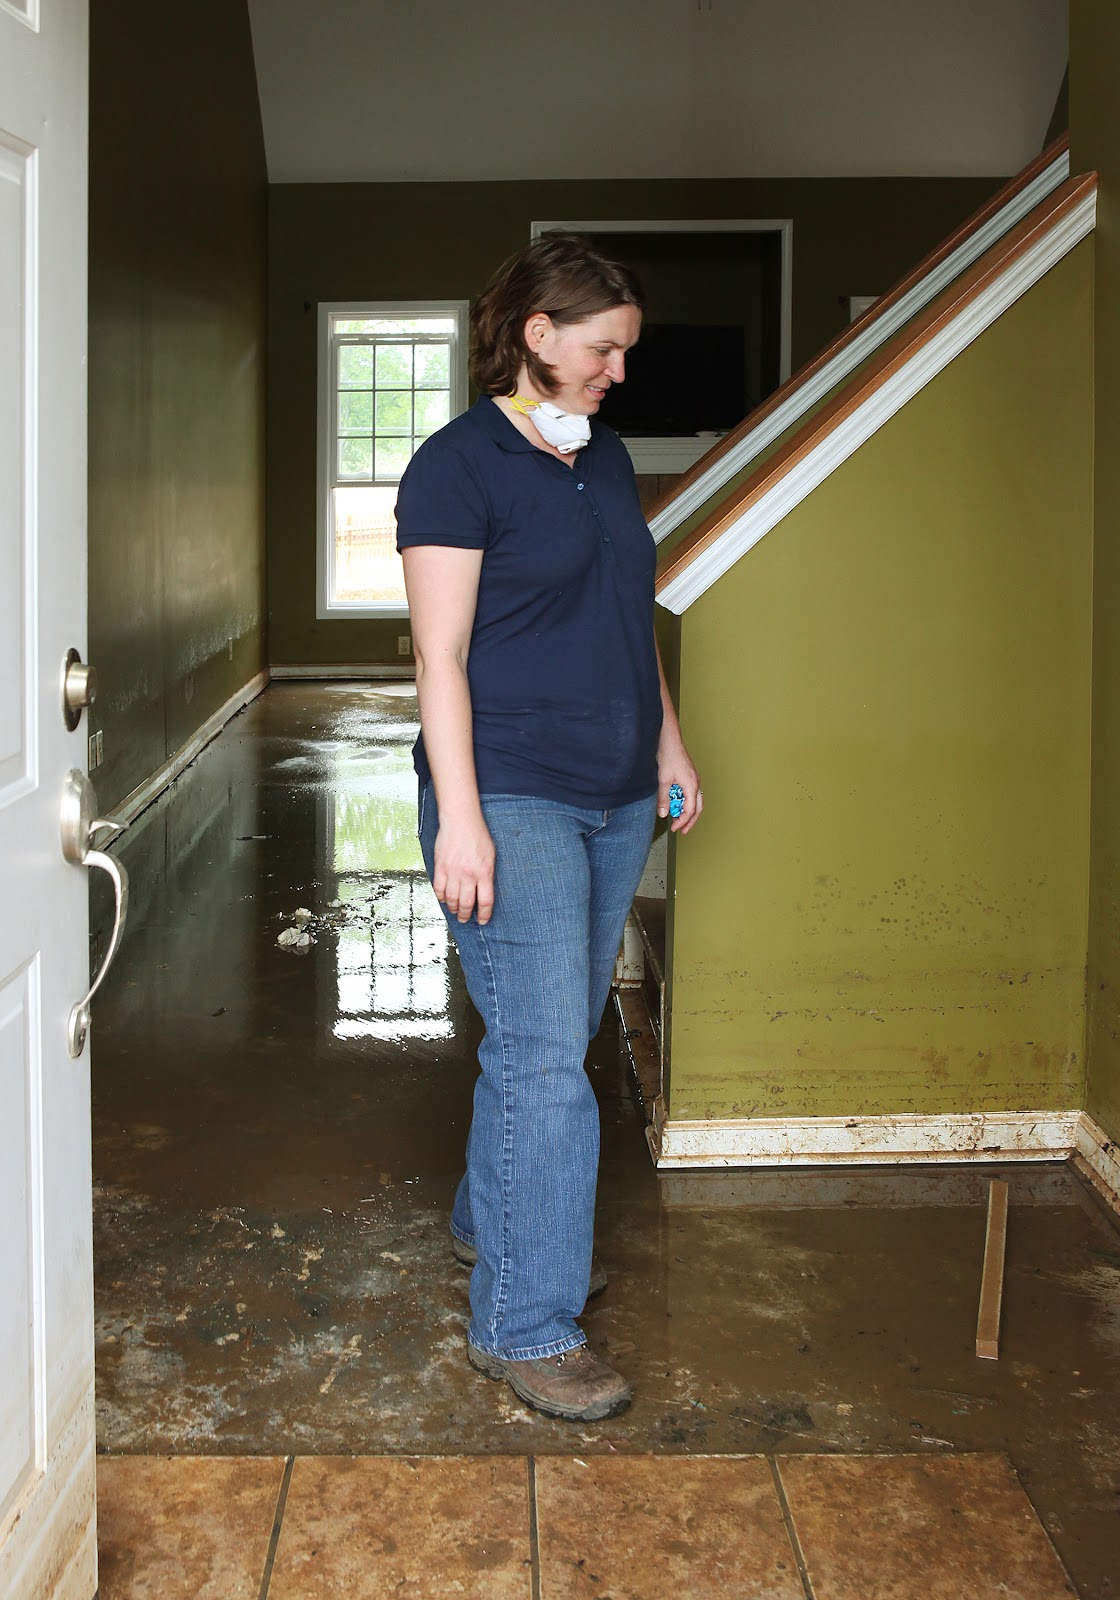 FEMA_-_44084_-_Resident_of_Clarksville_surveying_her_flood_damaged_home.jpg